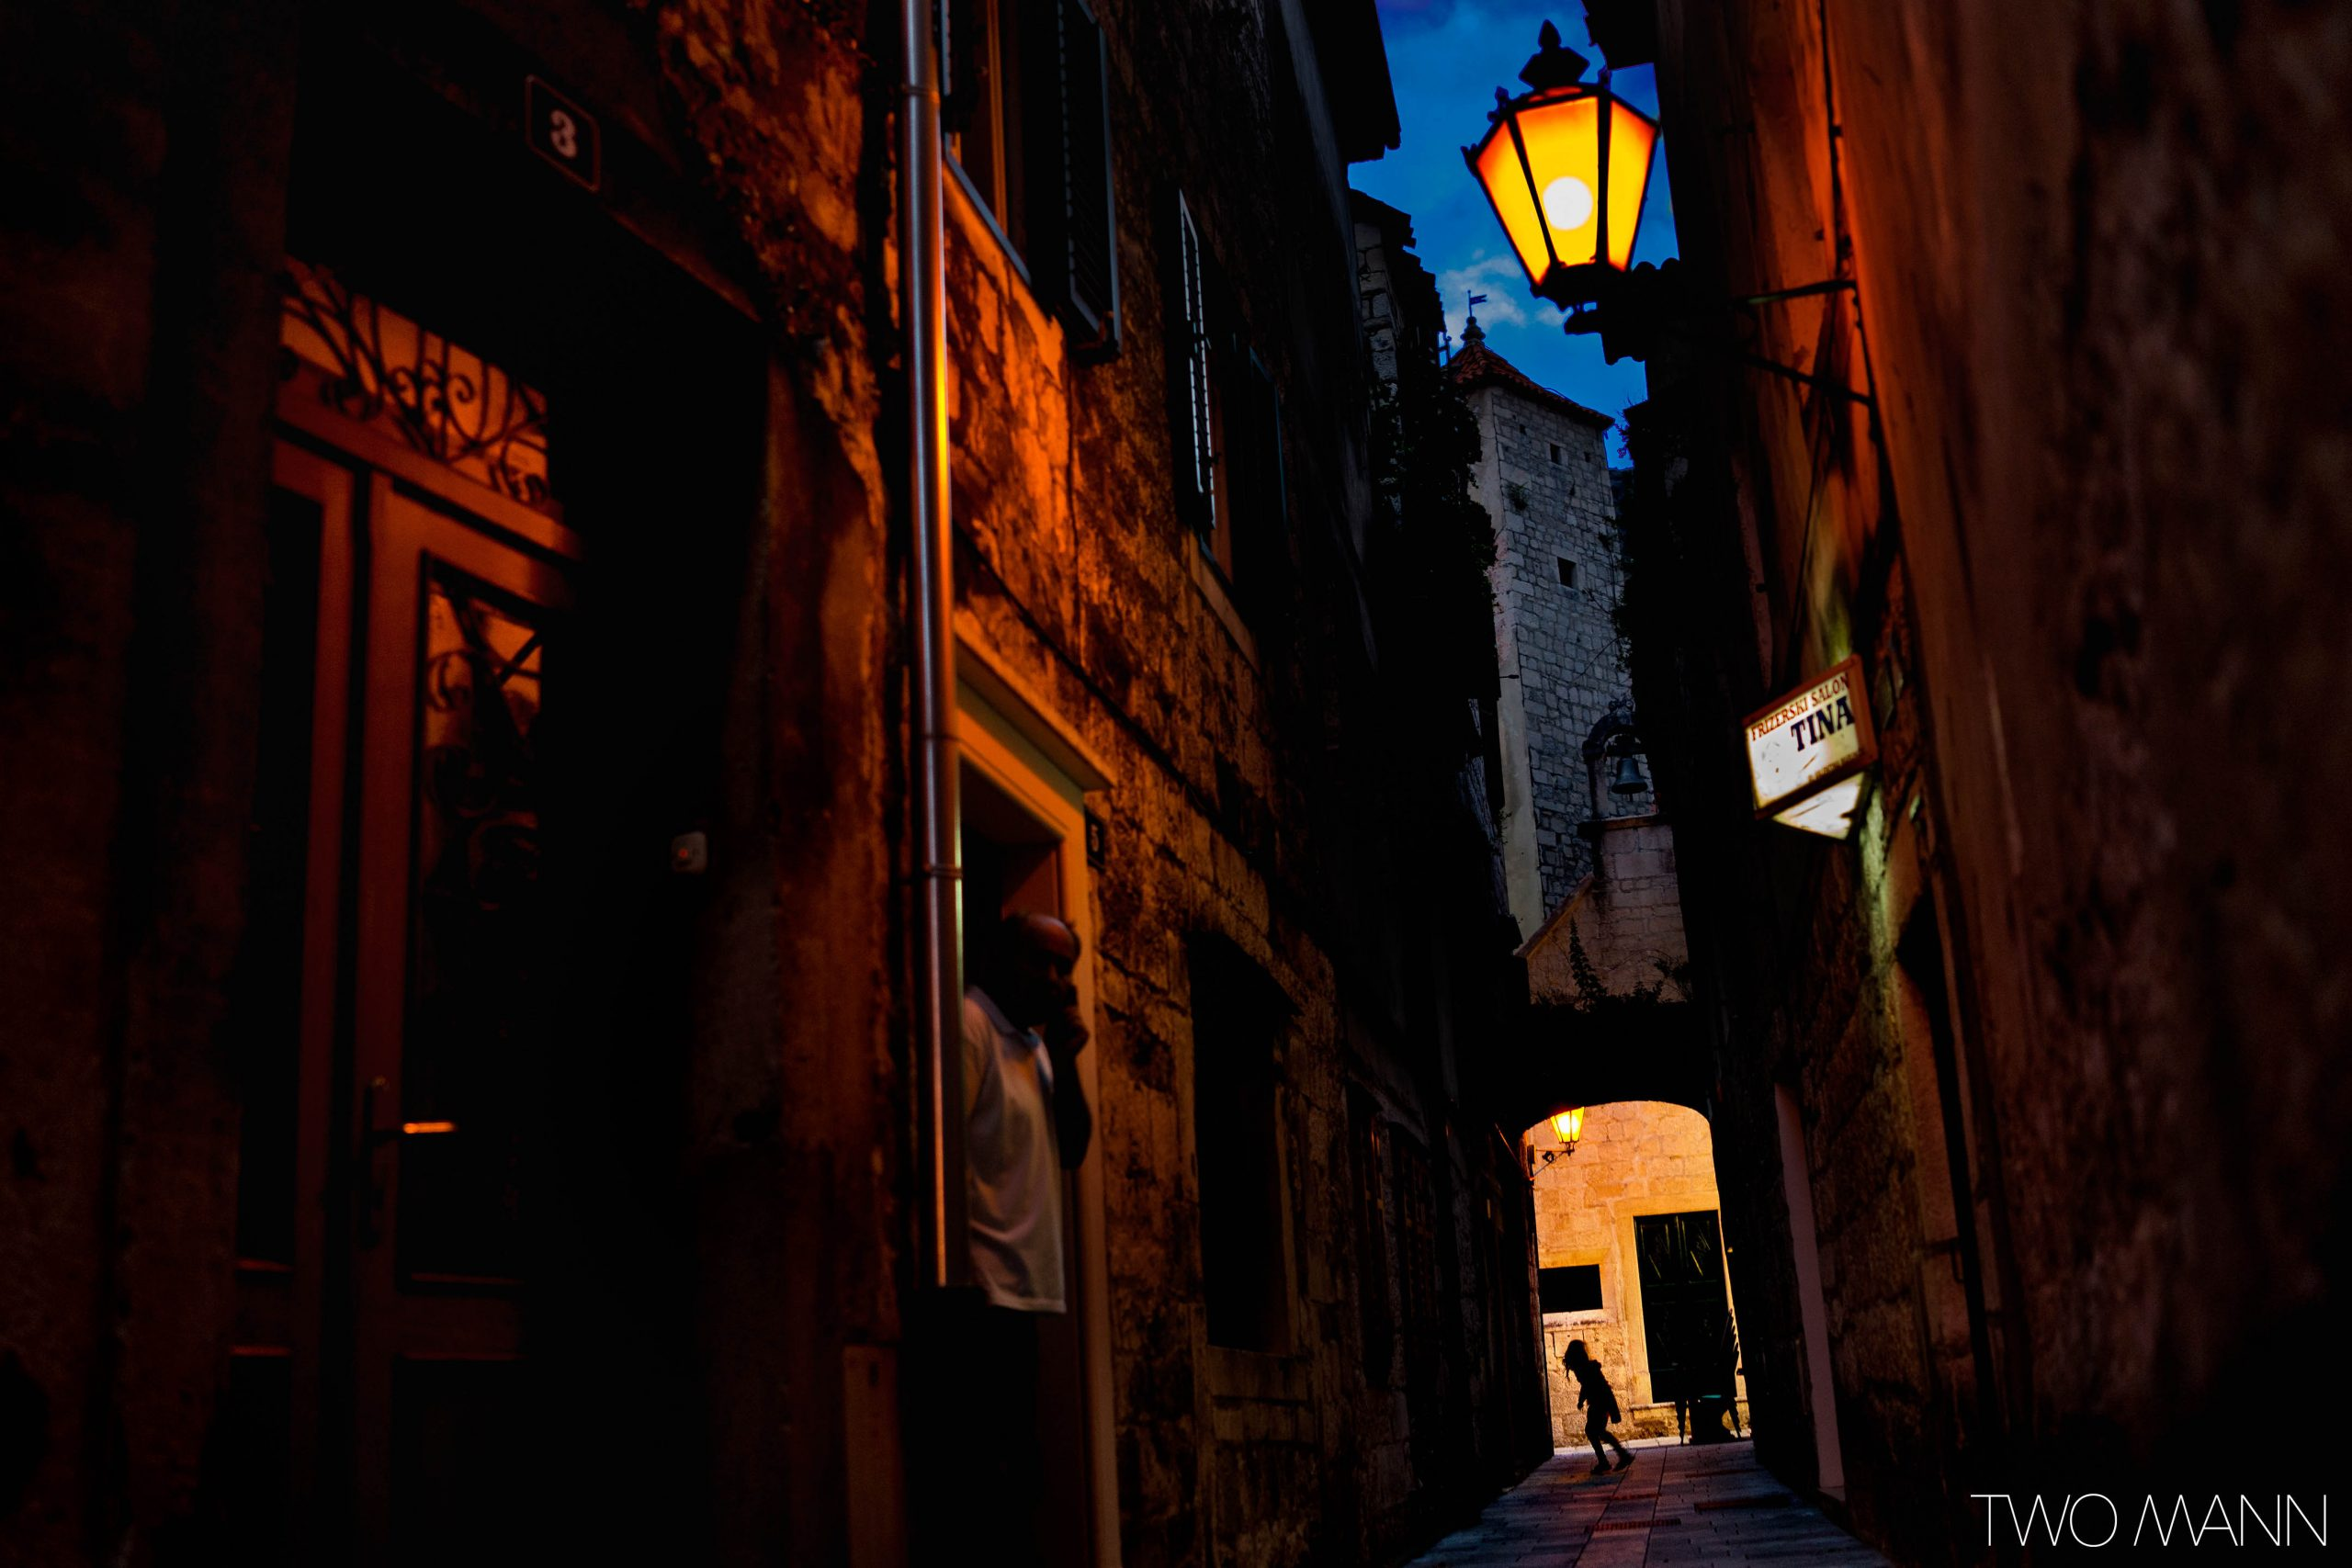 Young girl playing on narrow city street at dusk